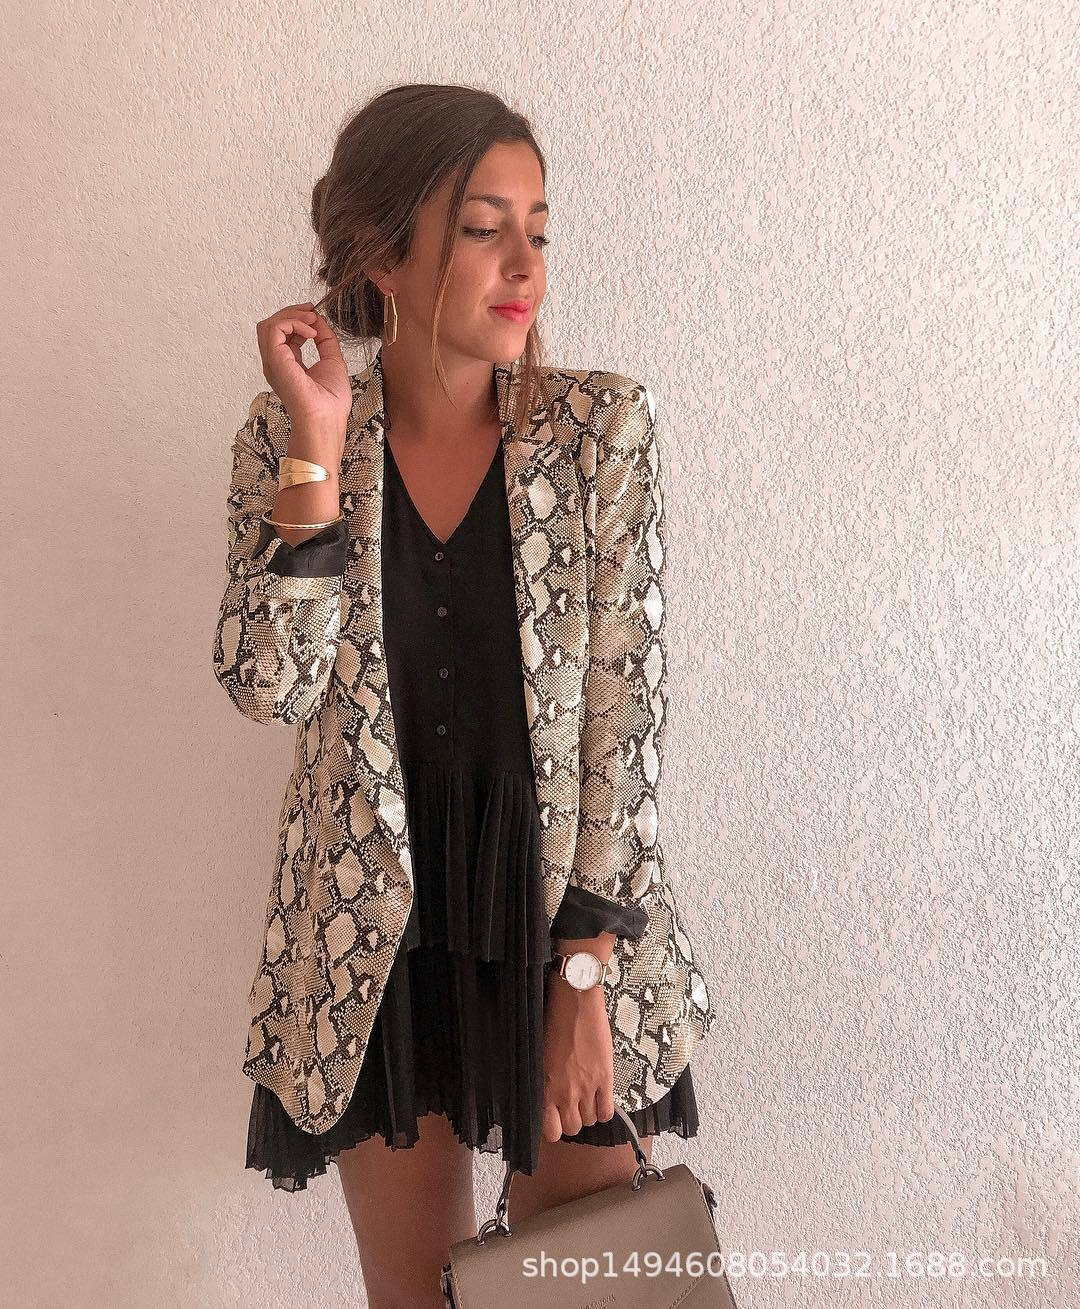 a435b0cd3f New Women Blazers Long Sleeve Blazer Feminino Snake Skin Print Outerwear  Office Lady Work Wear Fall Womens Tops and Blouses-in Blazers from Women s  Clothing ...